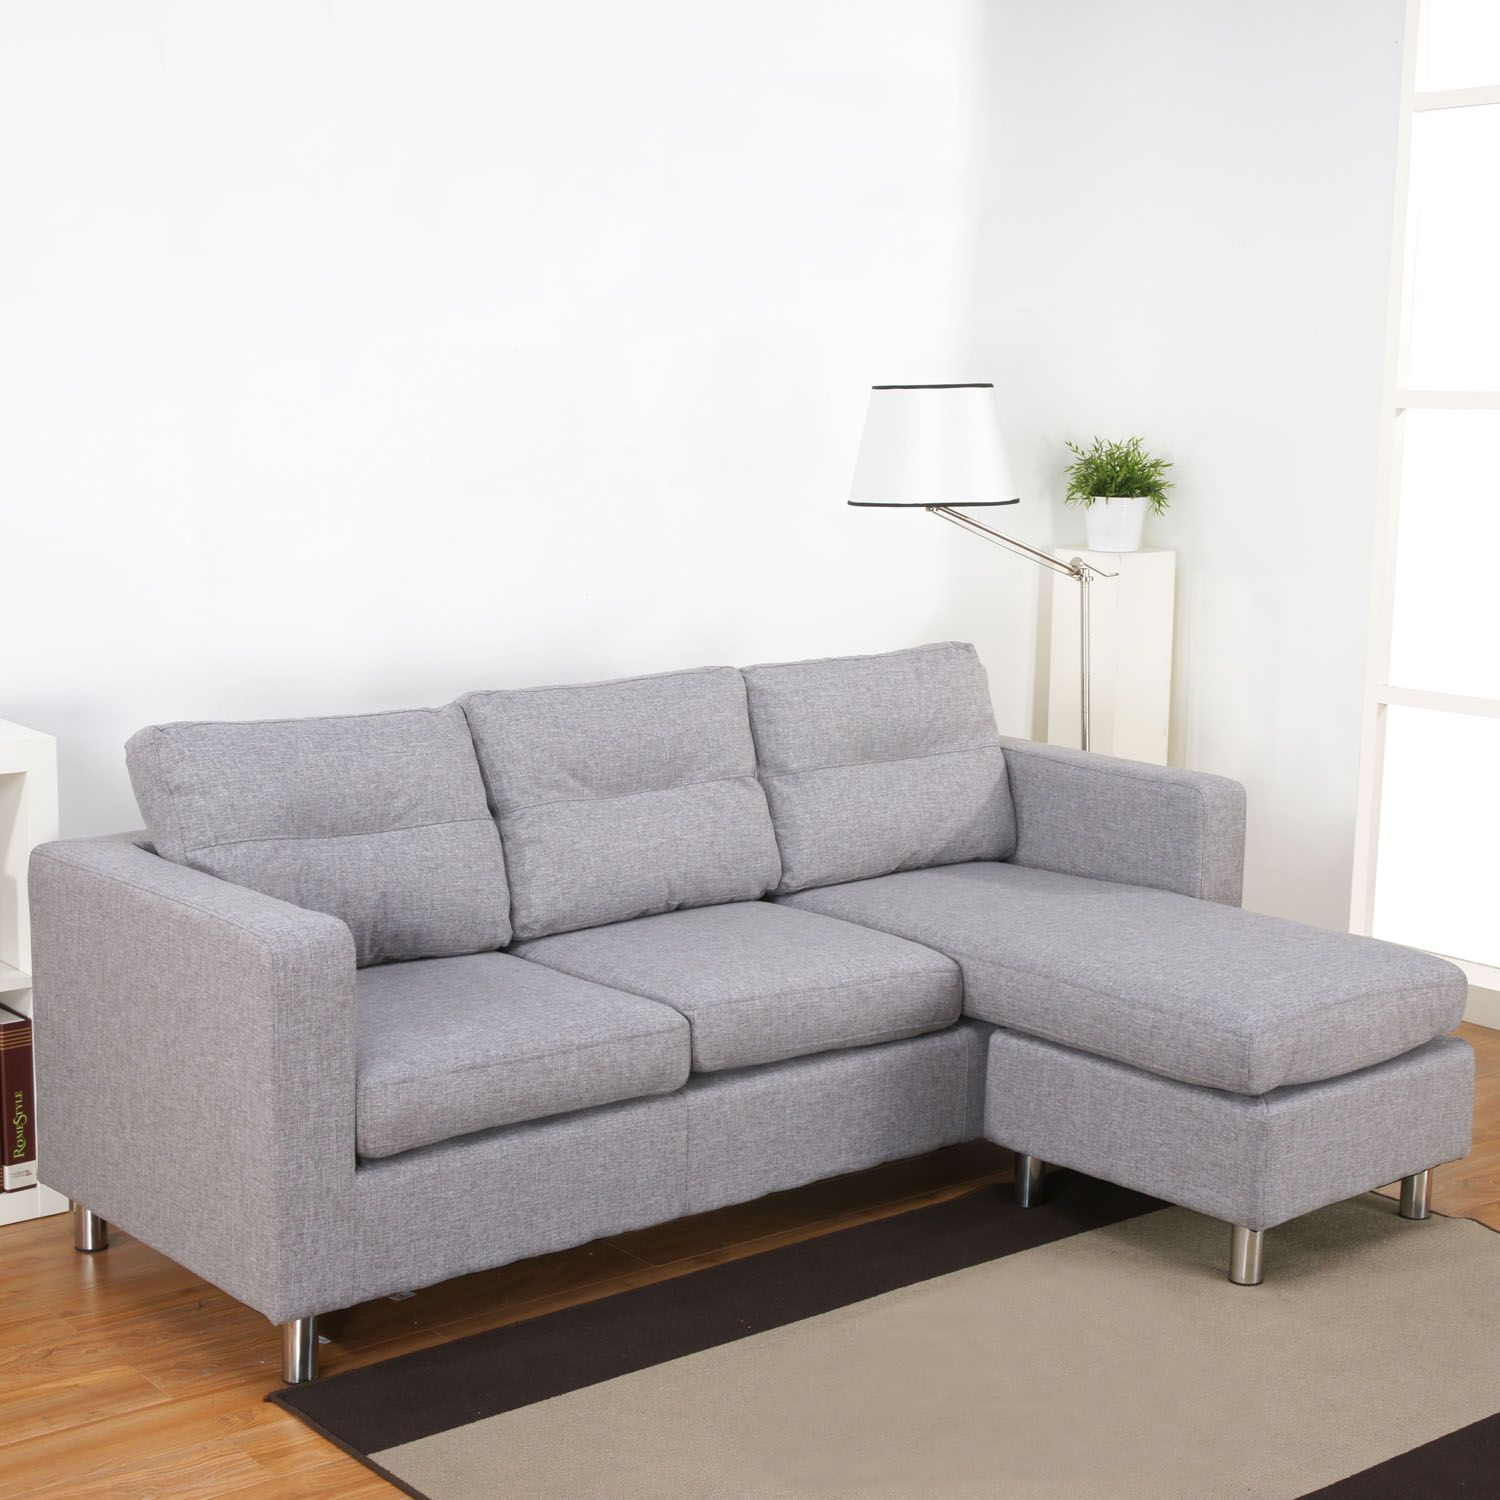 Osaka Peppered Grey Fabric Chaise Sofa A Sofasworld Co Uk